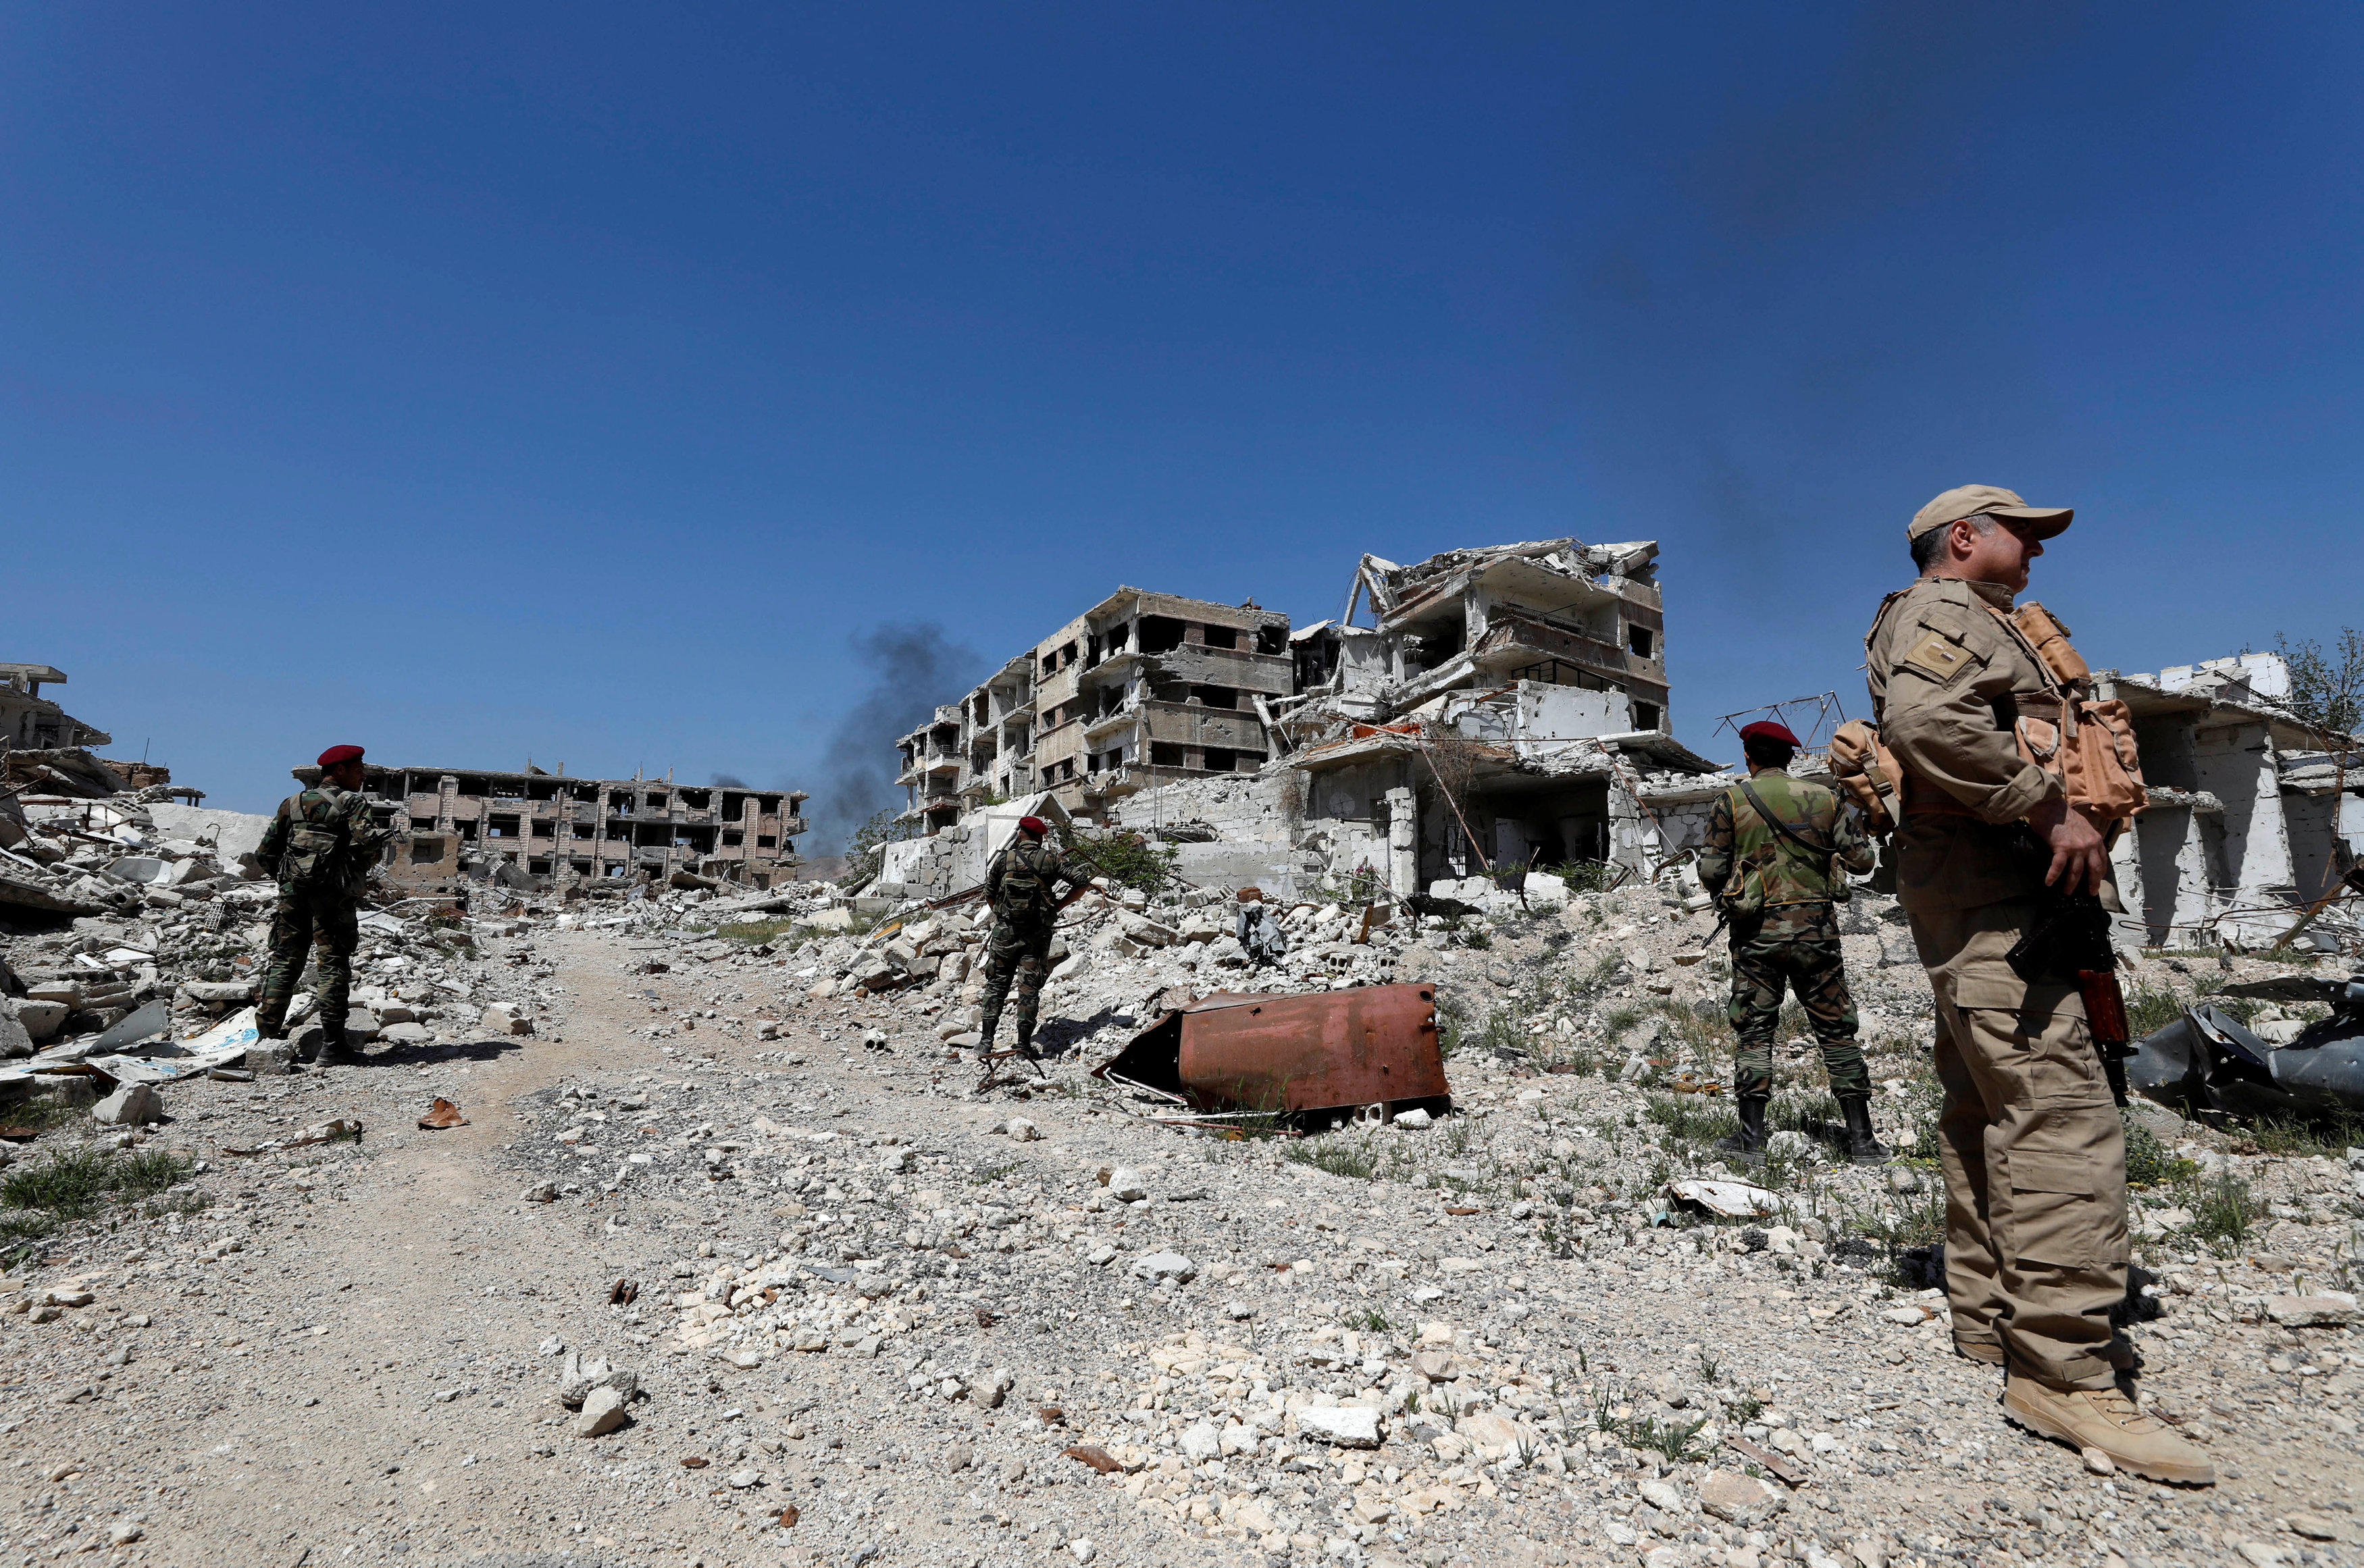 Russian troops and Syrian forces guarding the place, where al-Assad forces targeted Duma city with chemical weapons - May 2018 (Reuters)